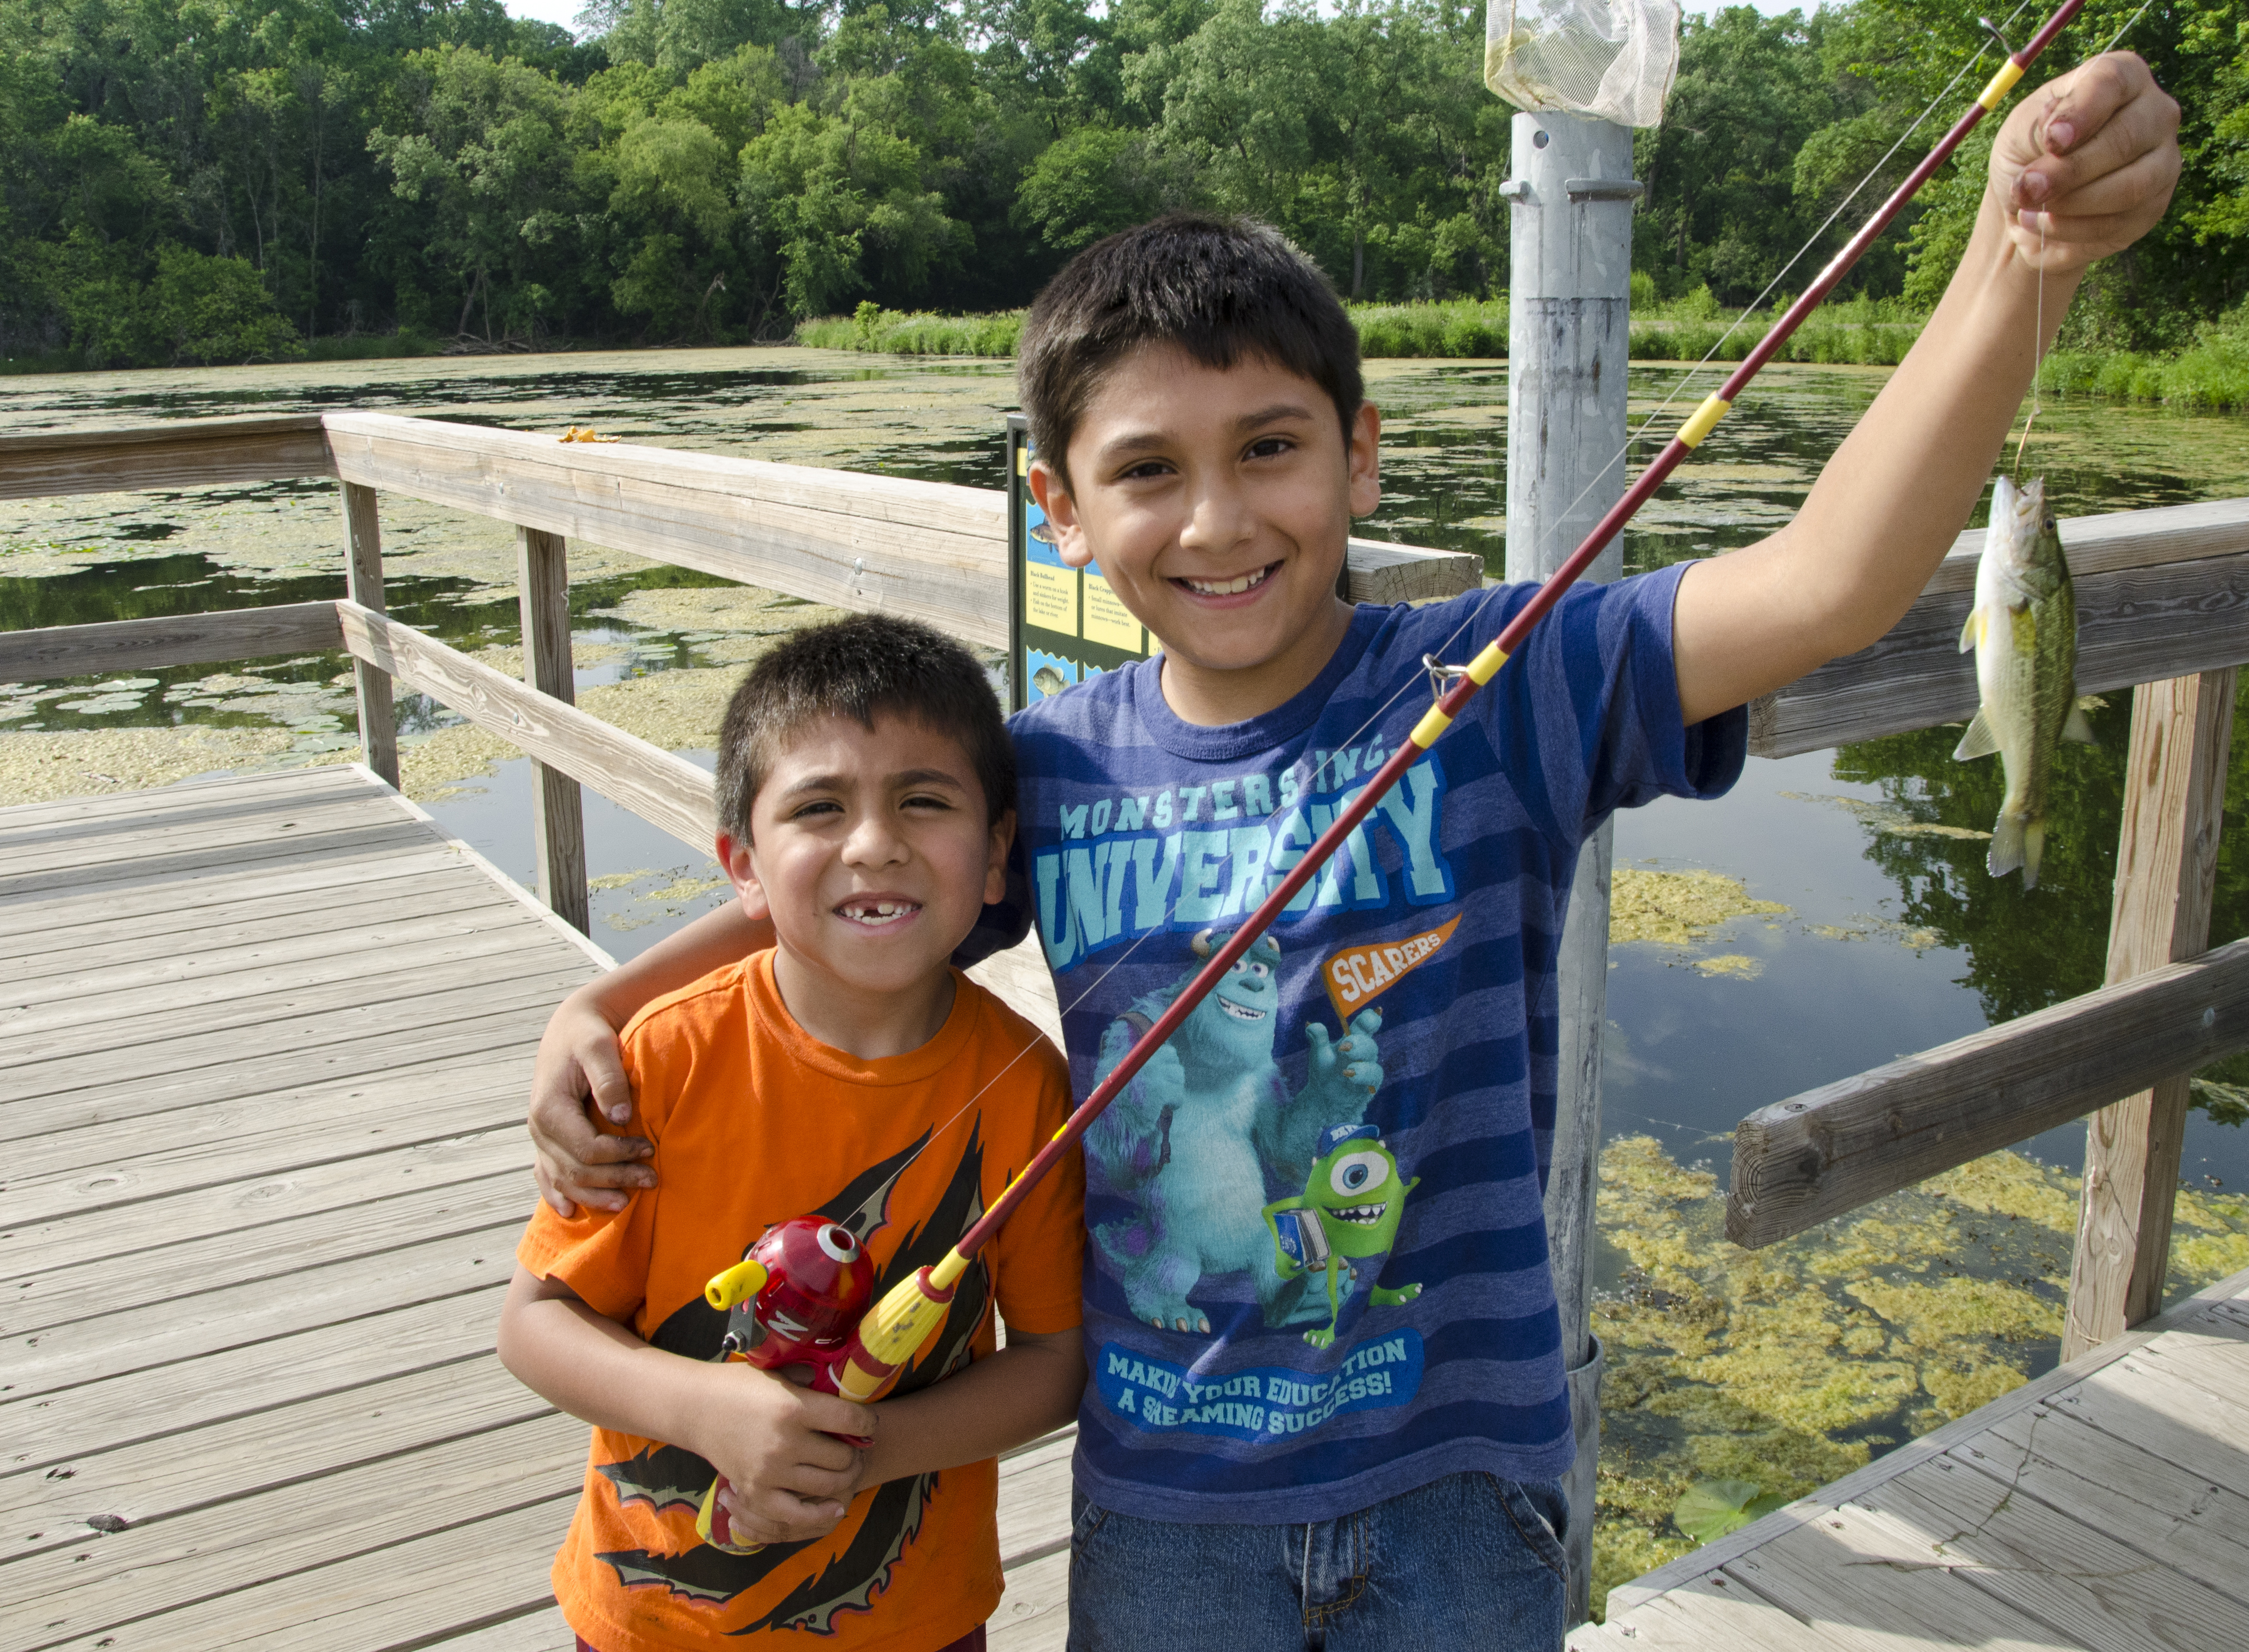 Two boys smiling during a Fr. Snelling fishing outing